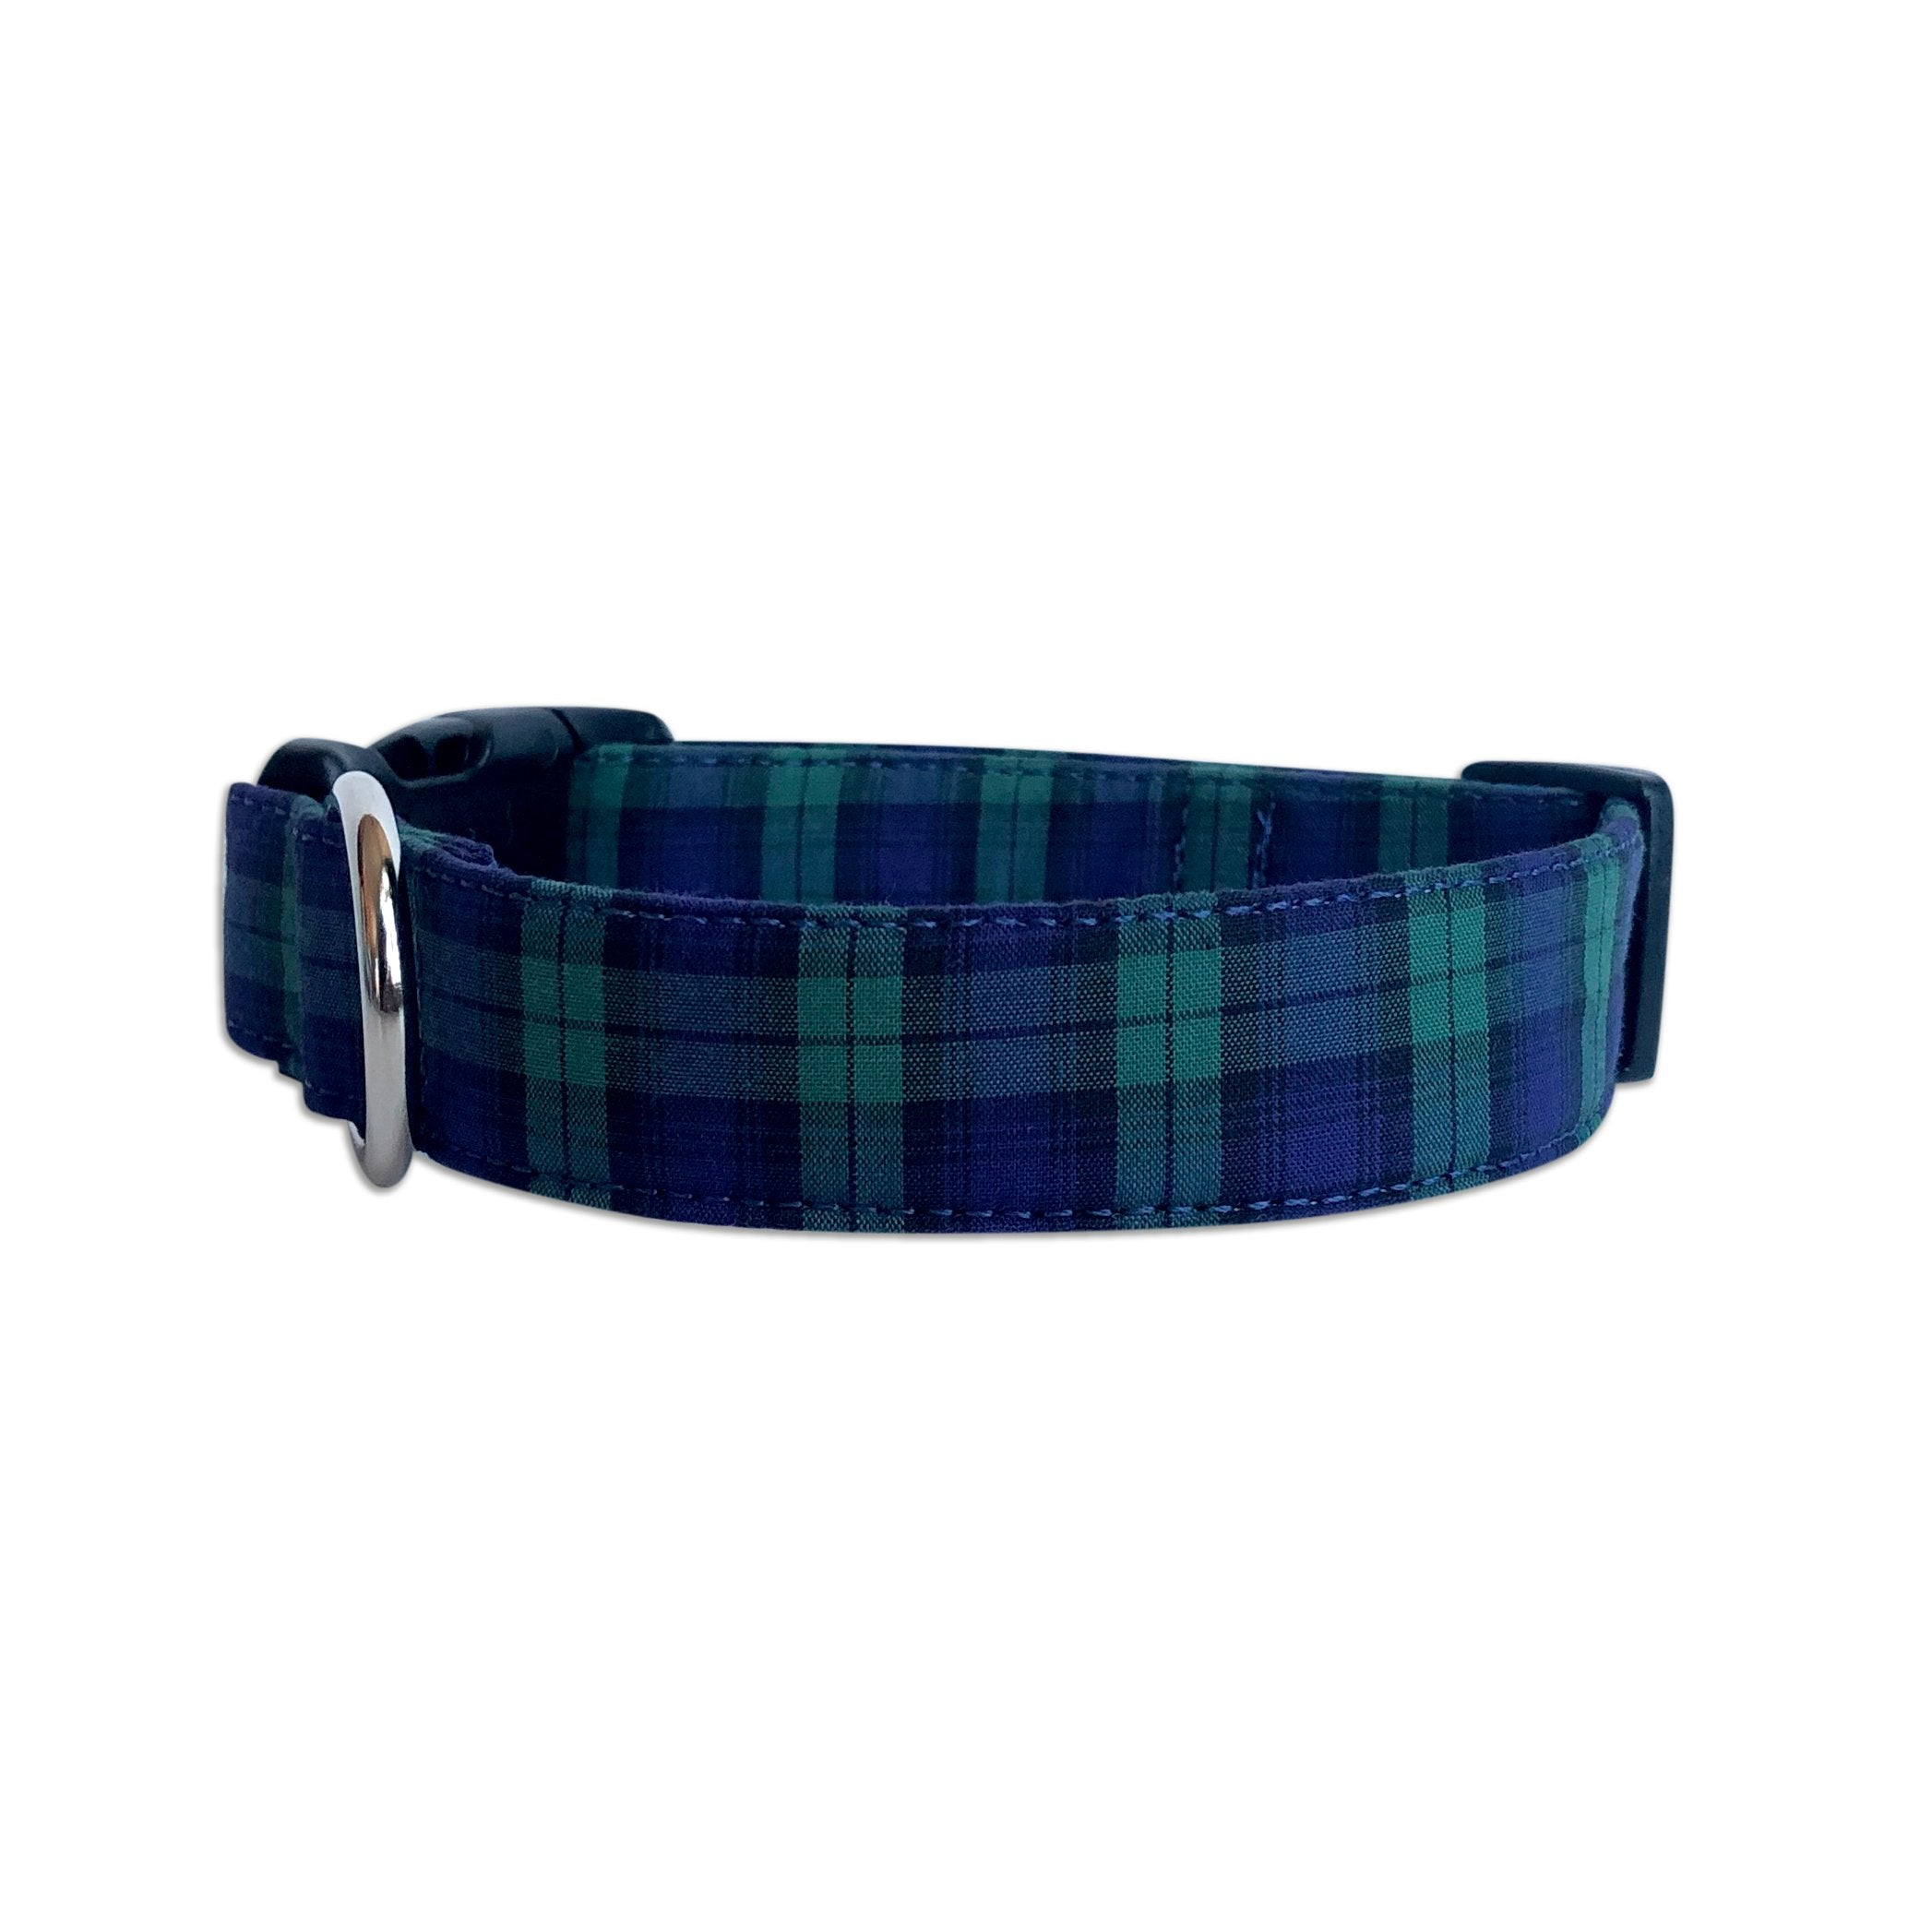 All the Plaid Collar